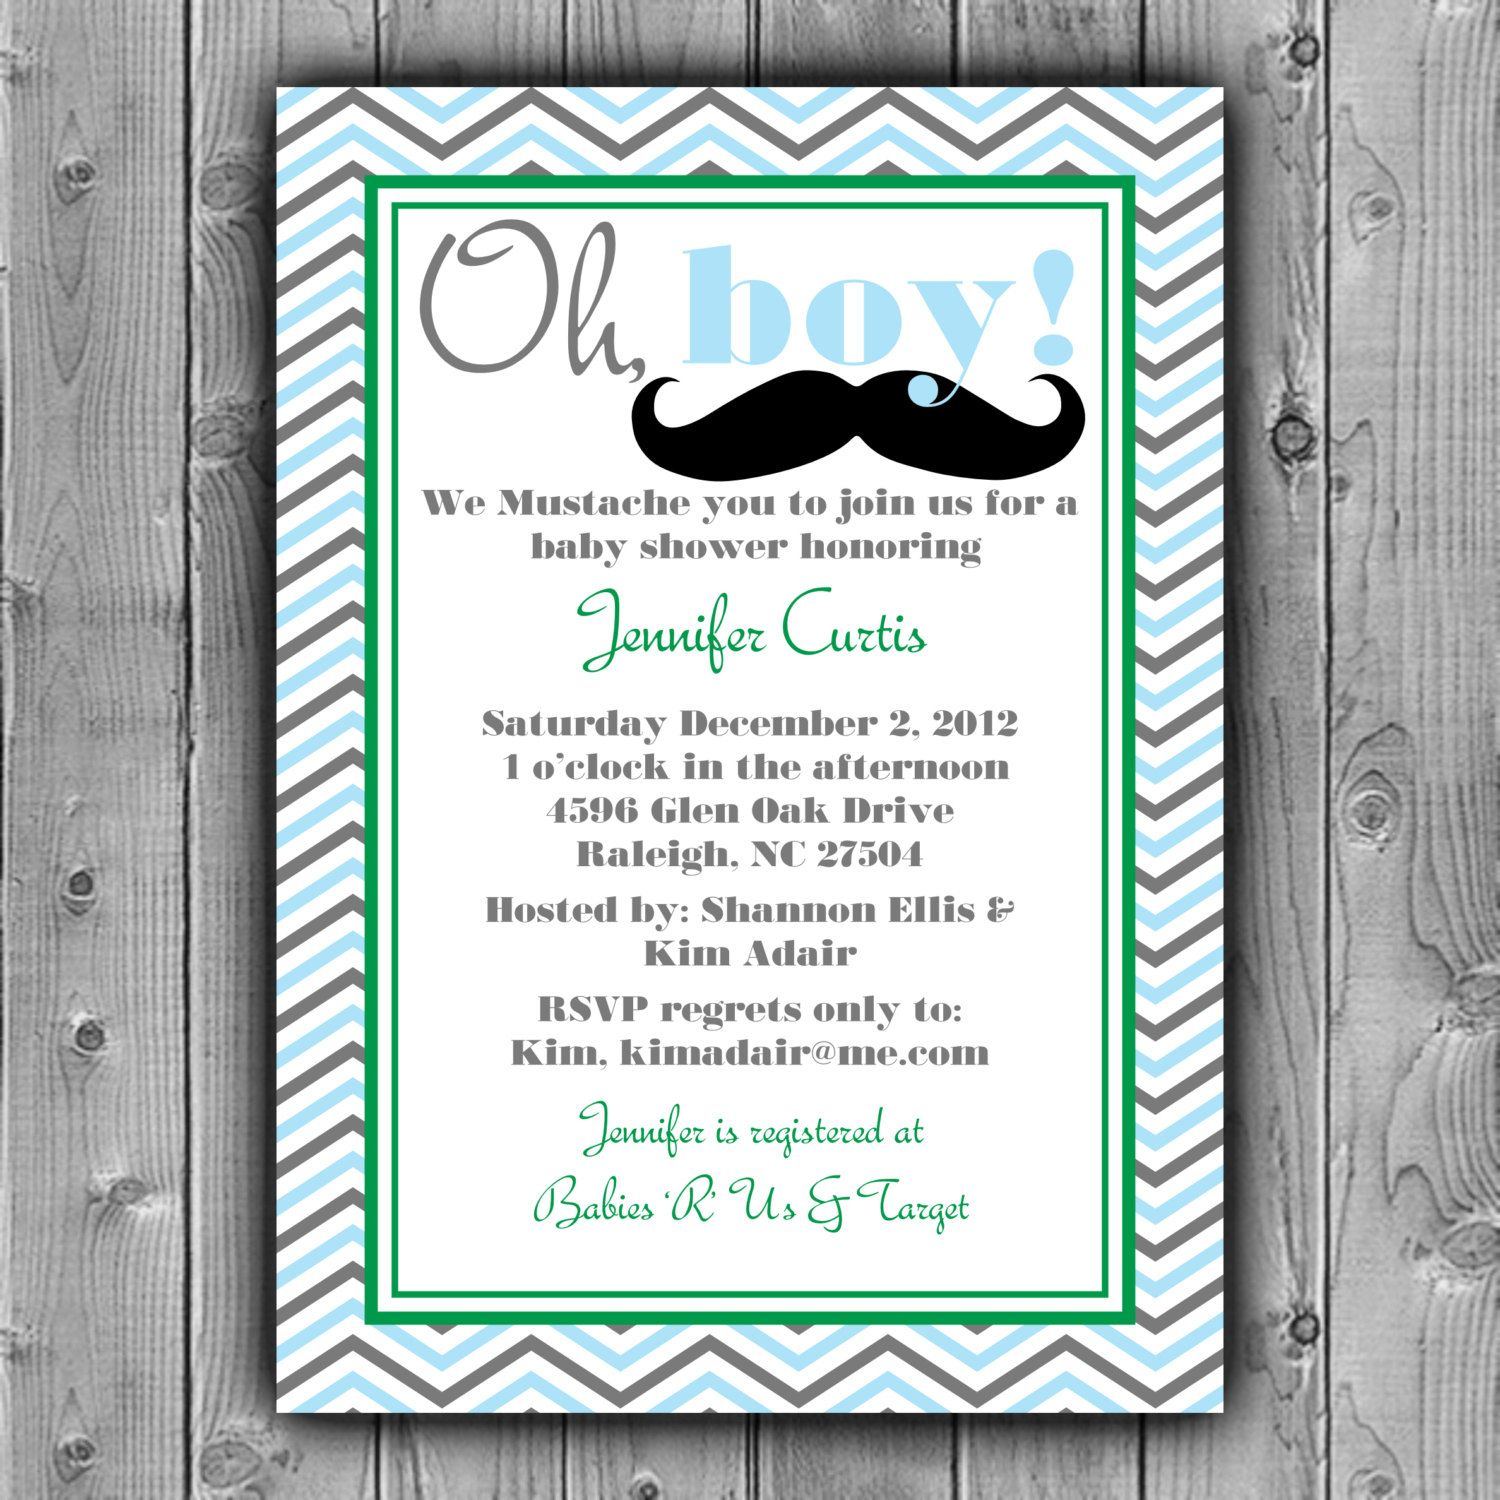 Cool Unique Ideas For Mustache Baby Shower Invitations Free Ideas